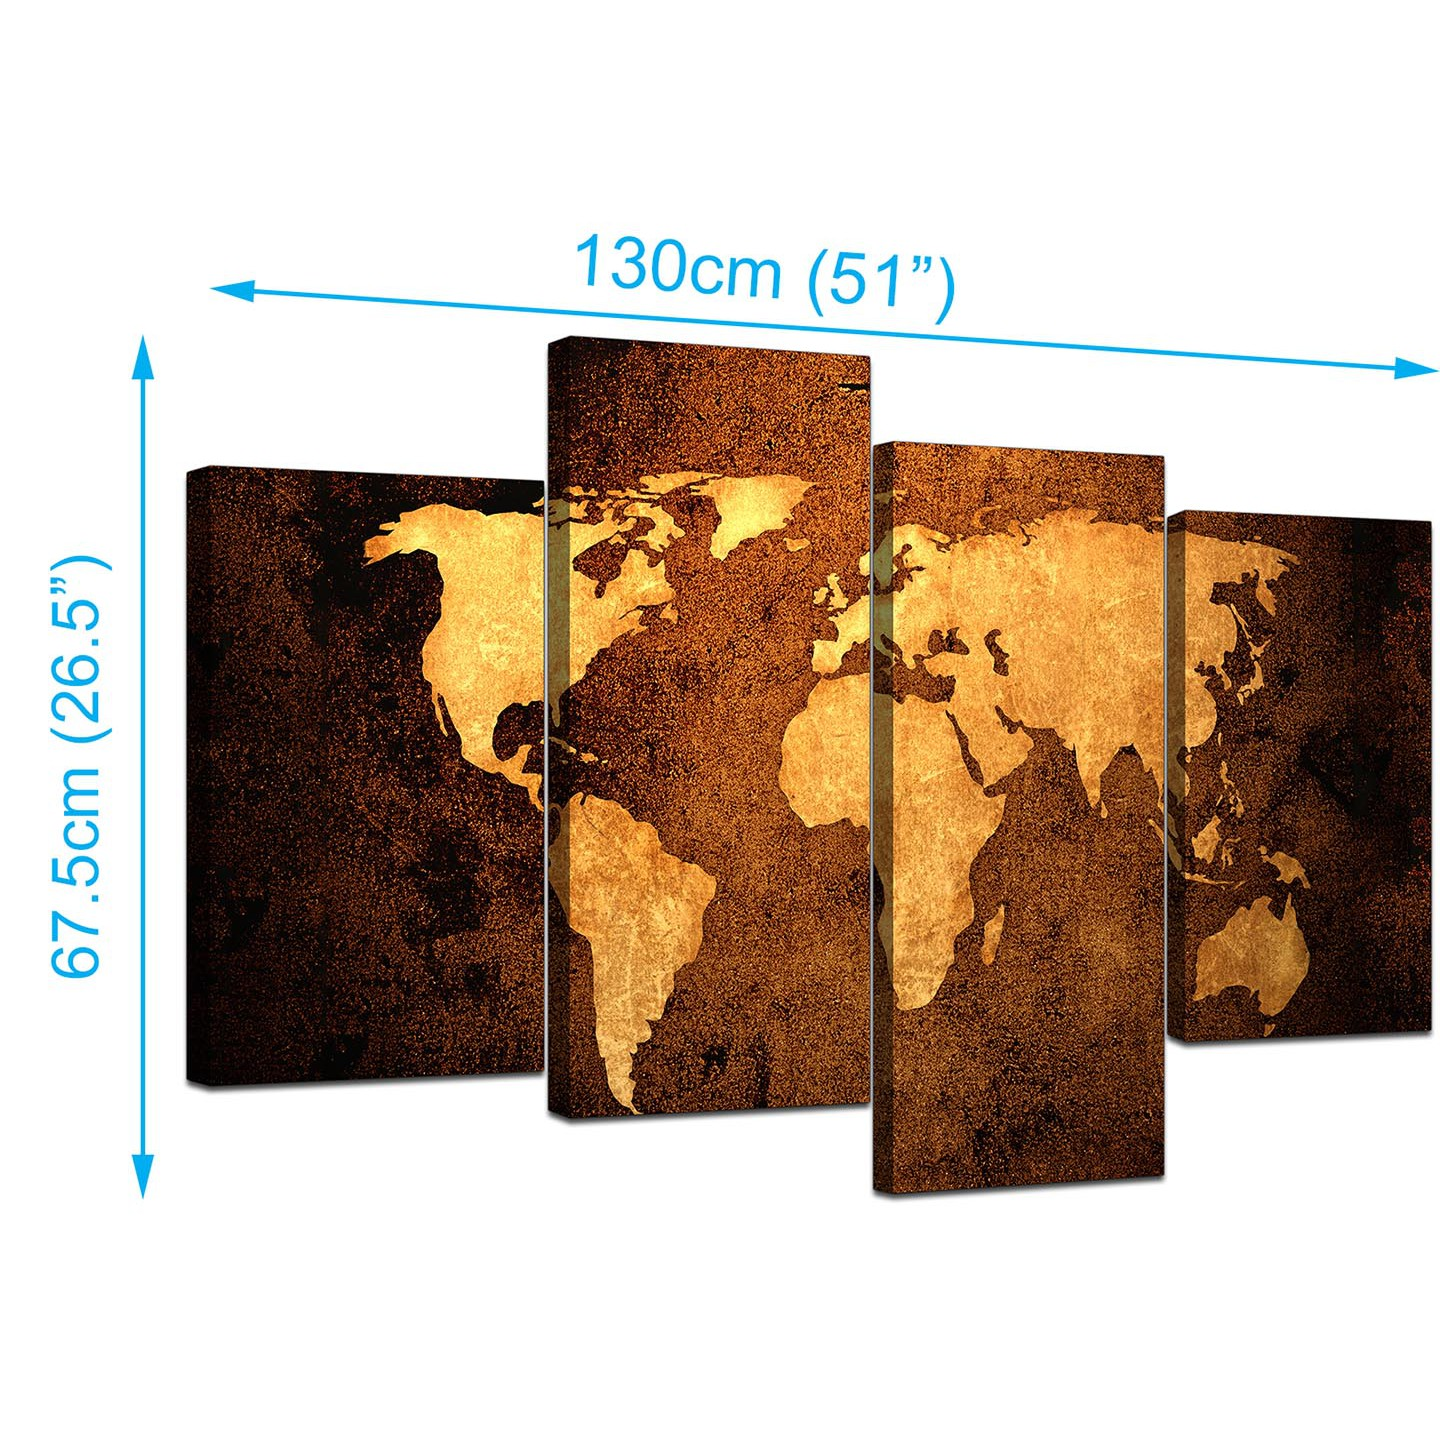 Canvas pictures of a world map in brown for your bedroom display gallery item 3 world map canvas wall art in brown leather effect display gallery item 4 wallfillers canvas hanging template gumiabroncs Image collections